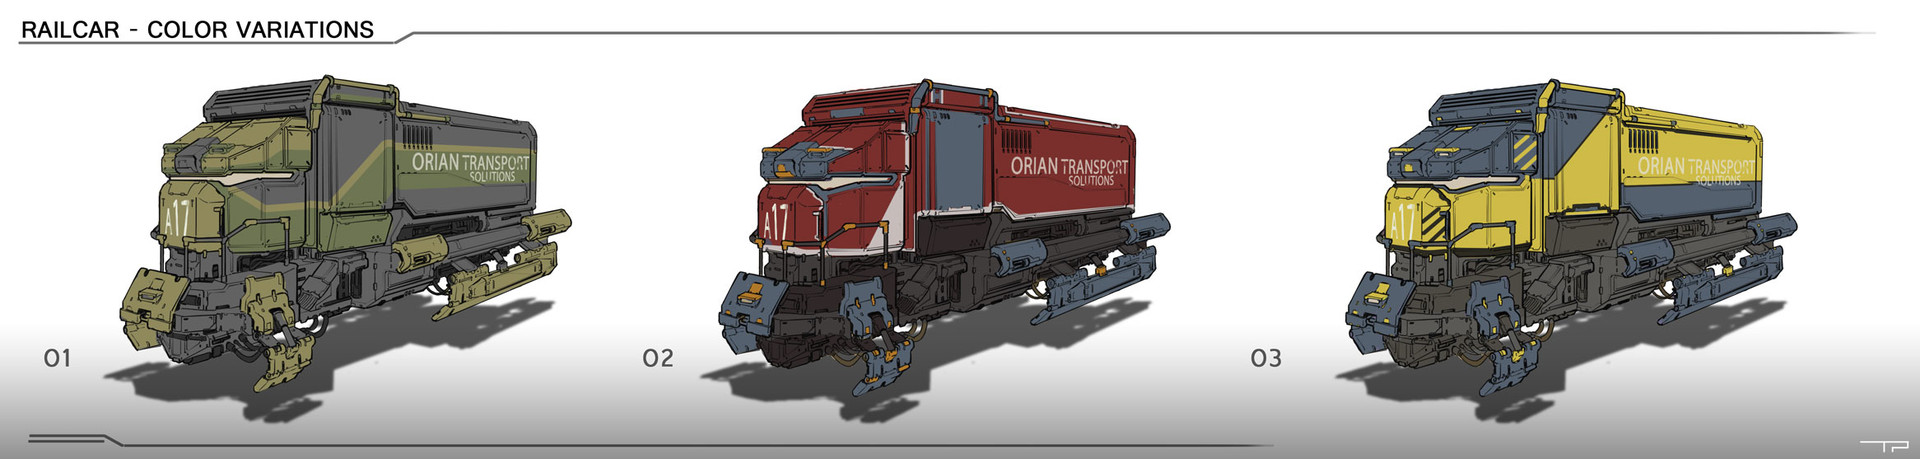 Timo peter railcar colorvariation 02